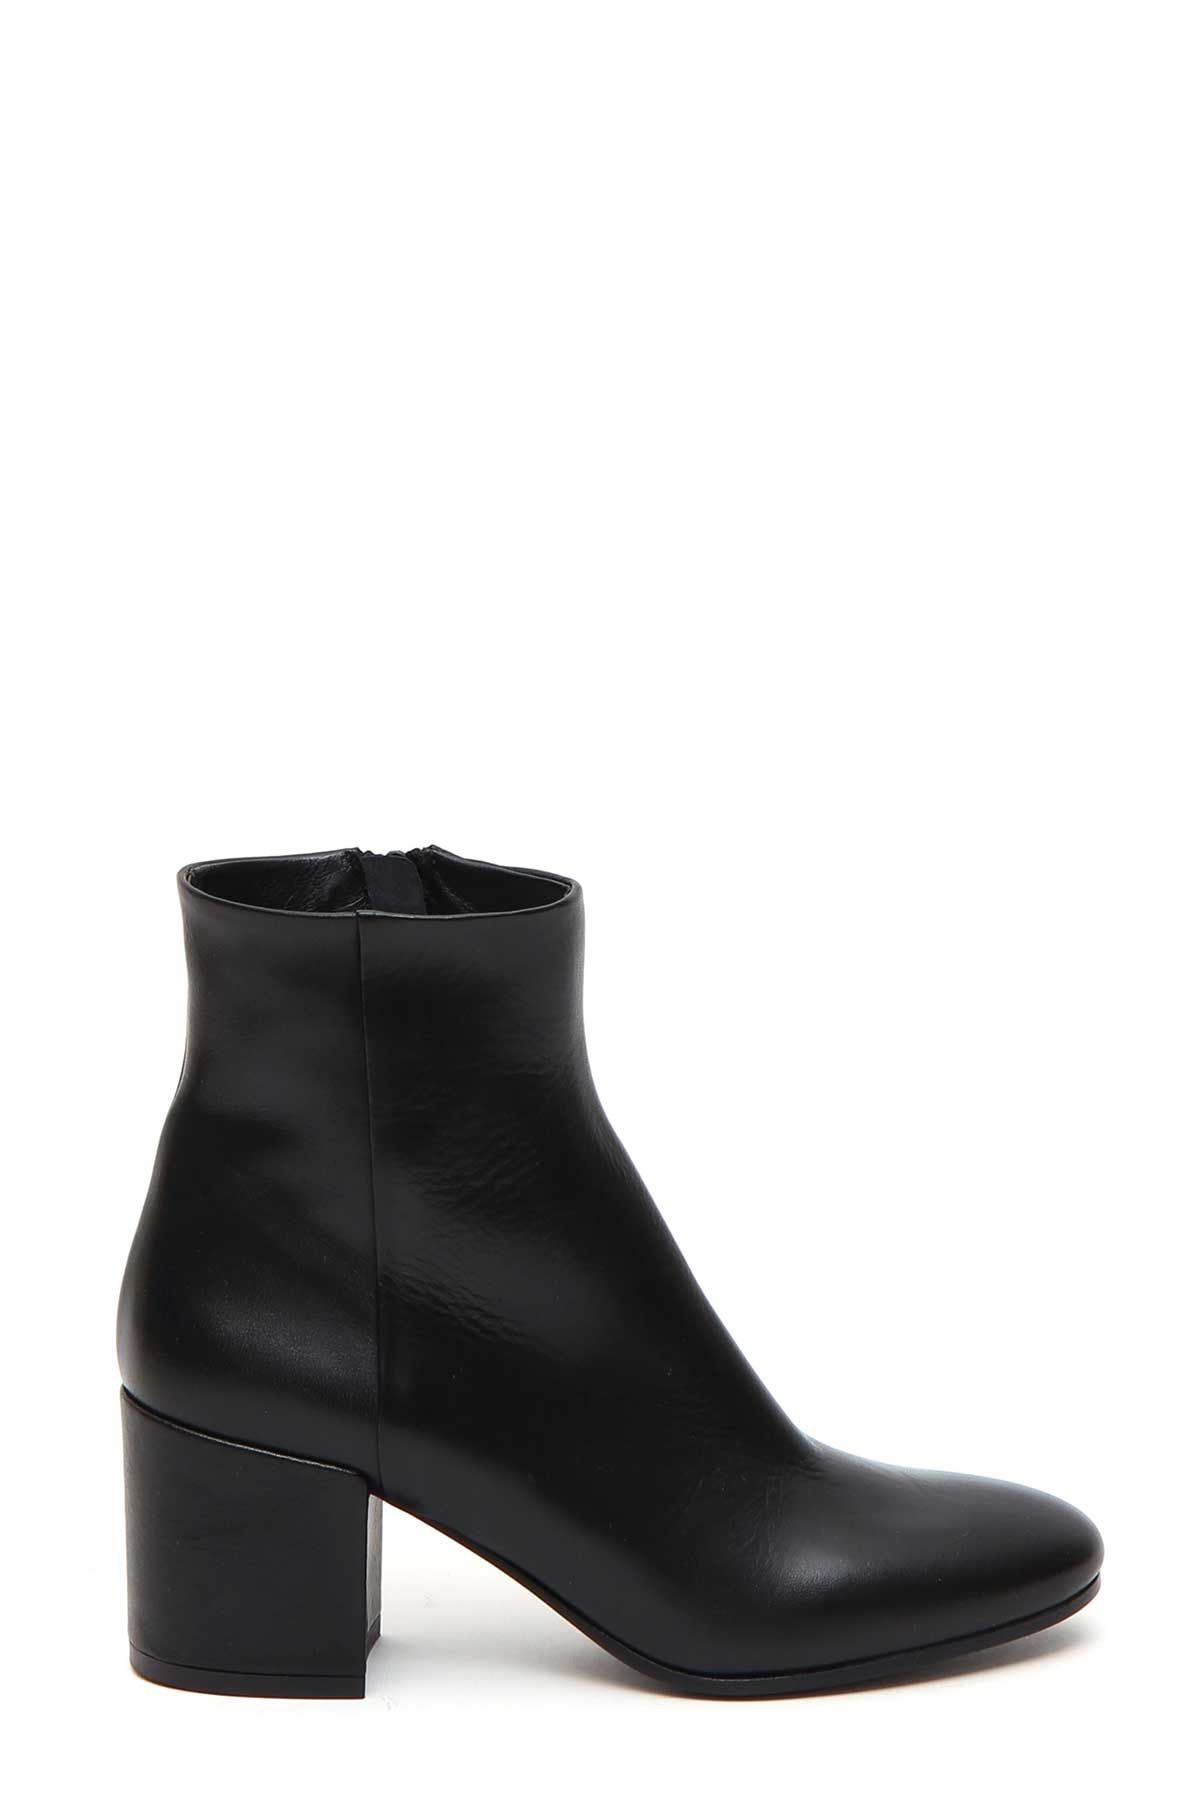 Strategia Strategia Leather Ankle Boots